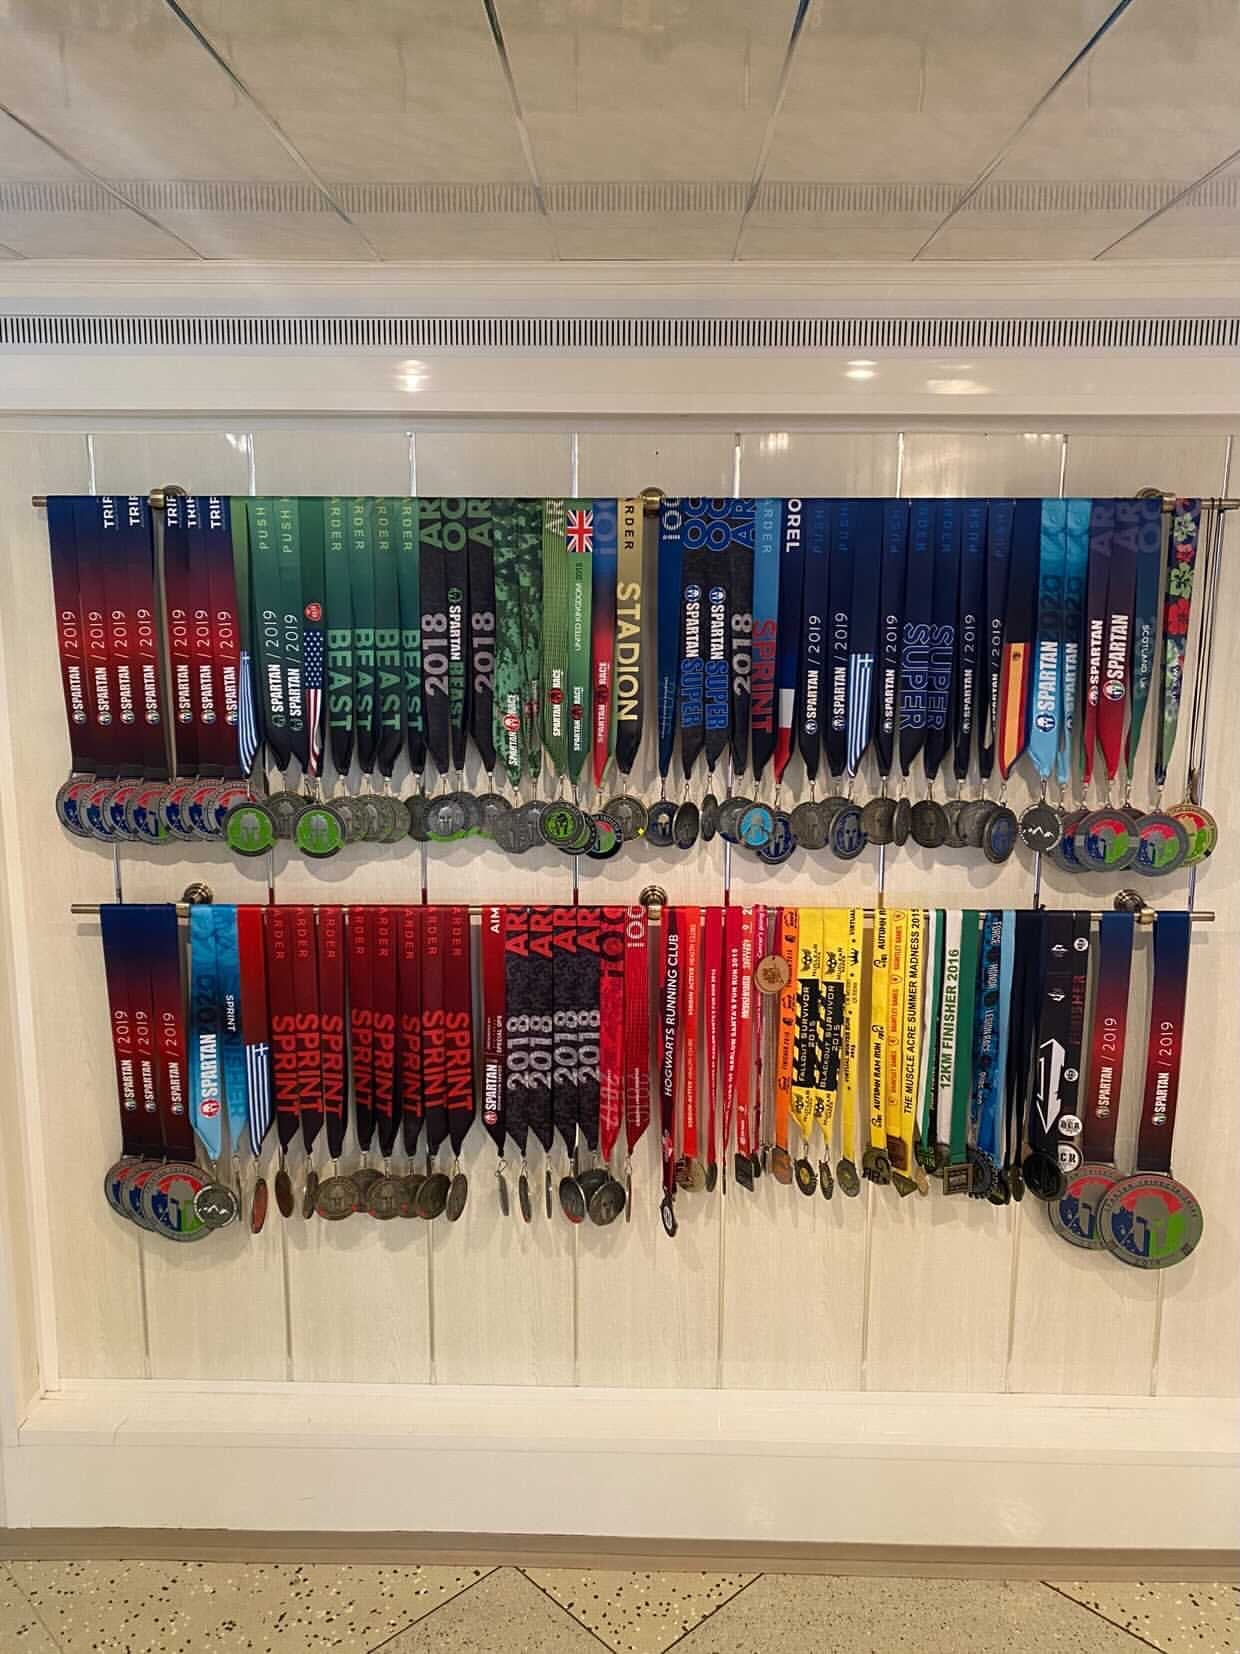 Samantha's medals hung on the wall